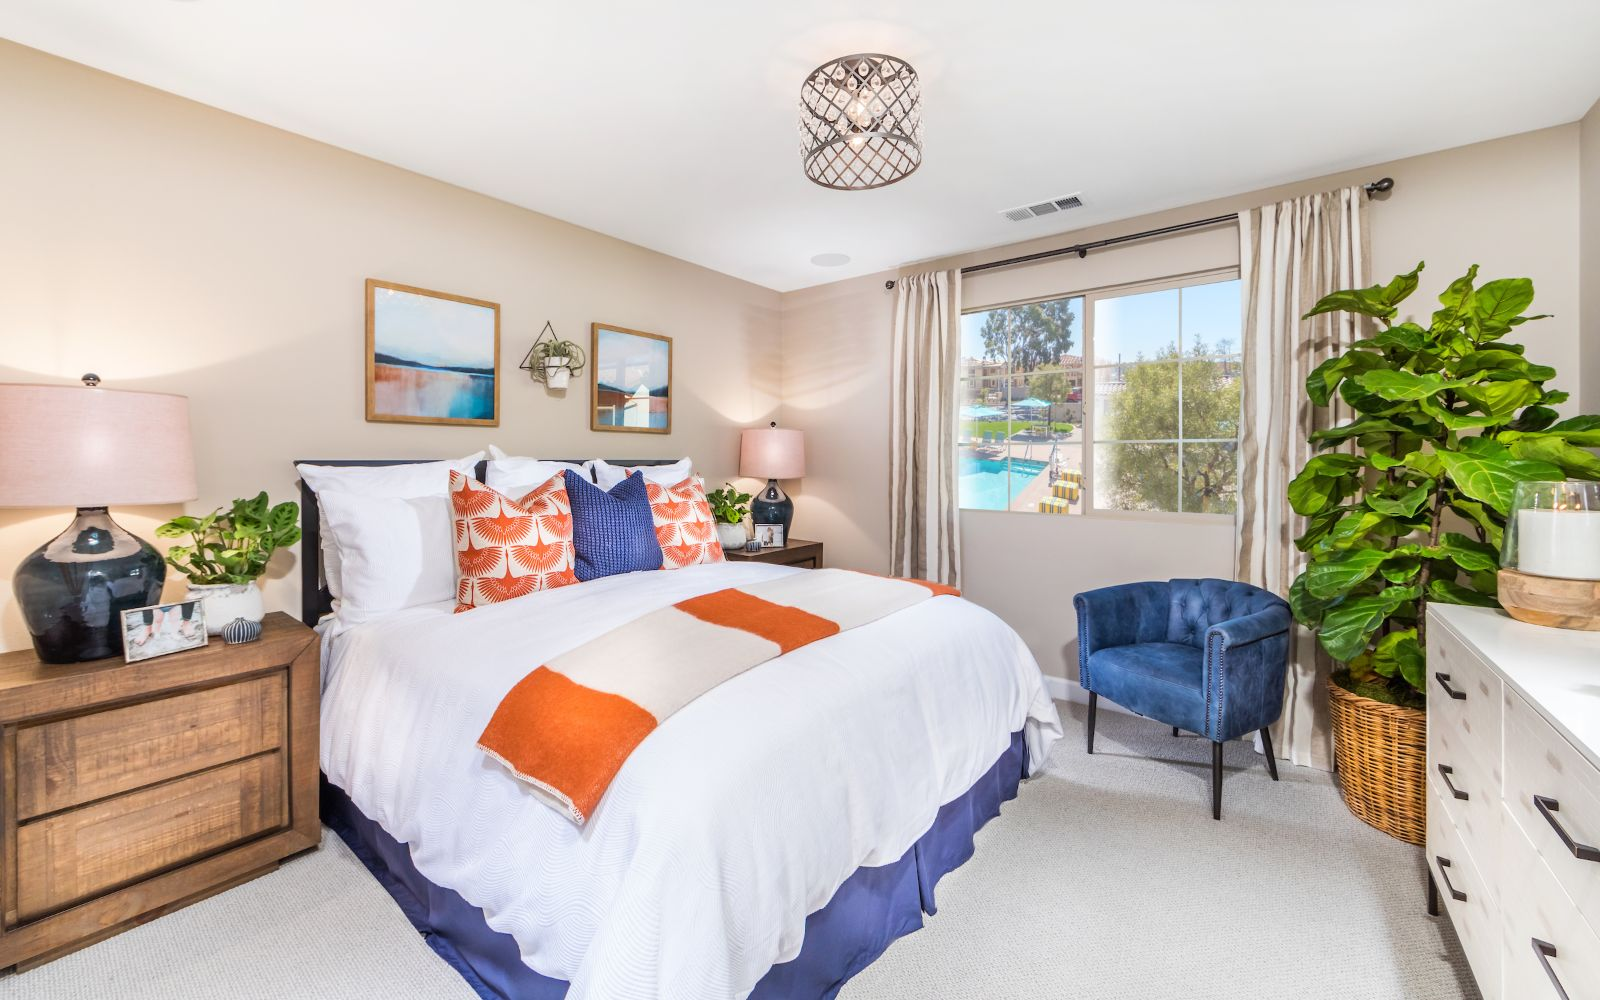 Gardens Plan 2 Master Bedroom| Lantana @Beach in Stanton, CA | Brookfield Residential